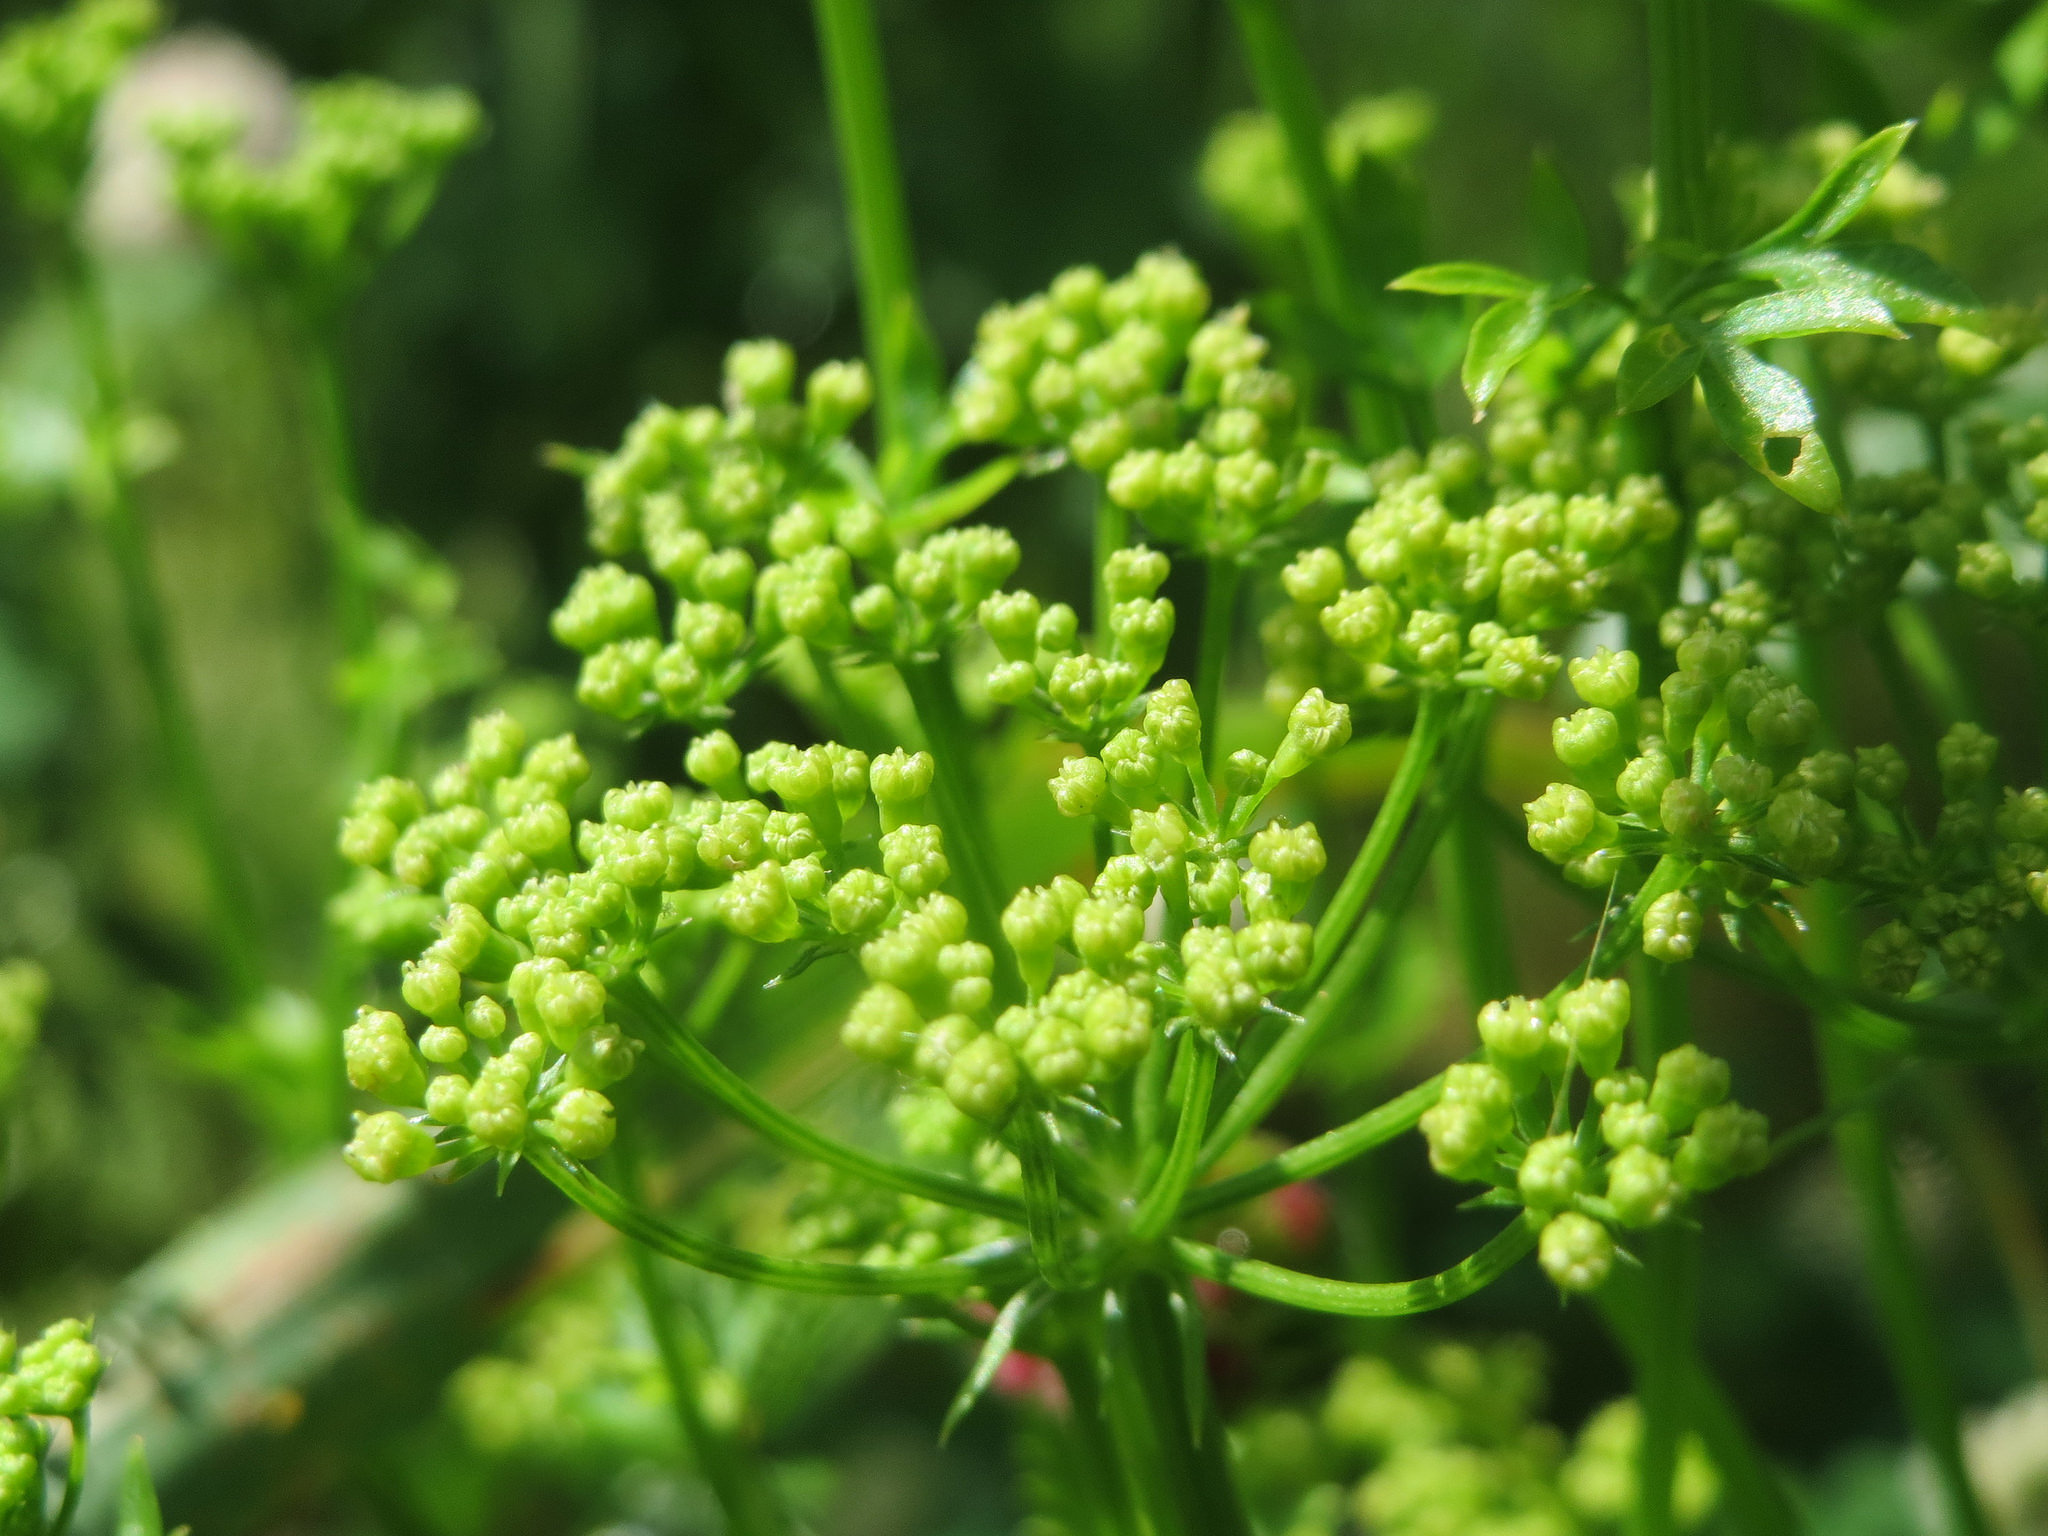 Parsley flowers have a strong scent and attract beneficial insects; photo courtesy of Flickr cc/ Andrea Rockstein